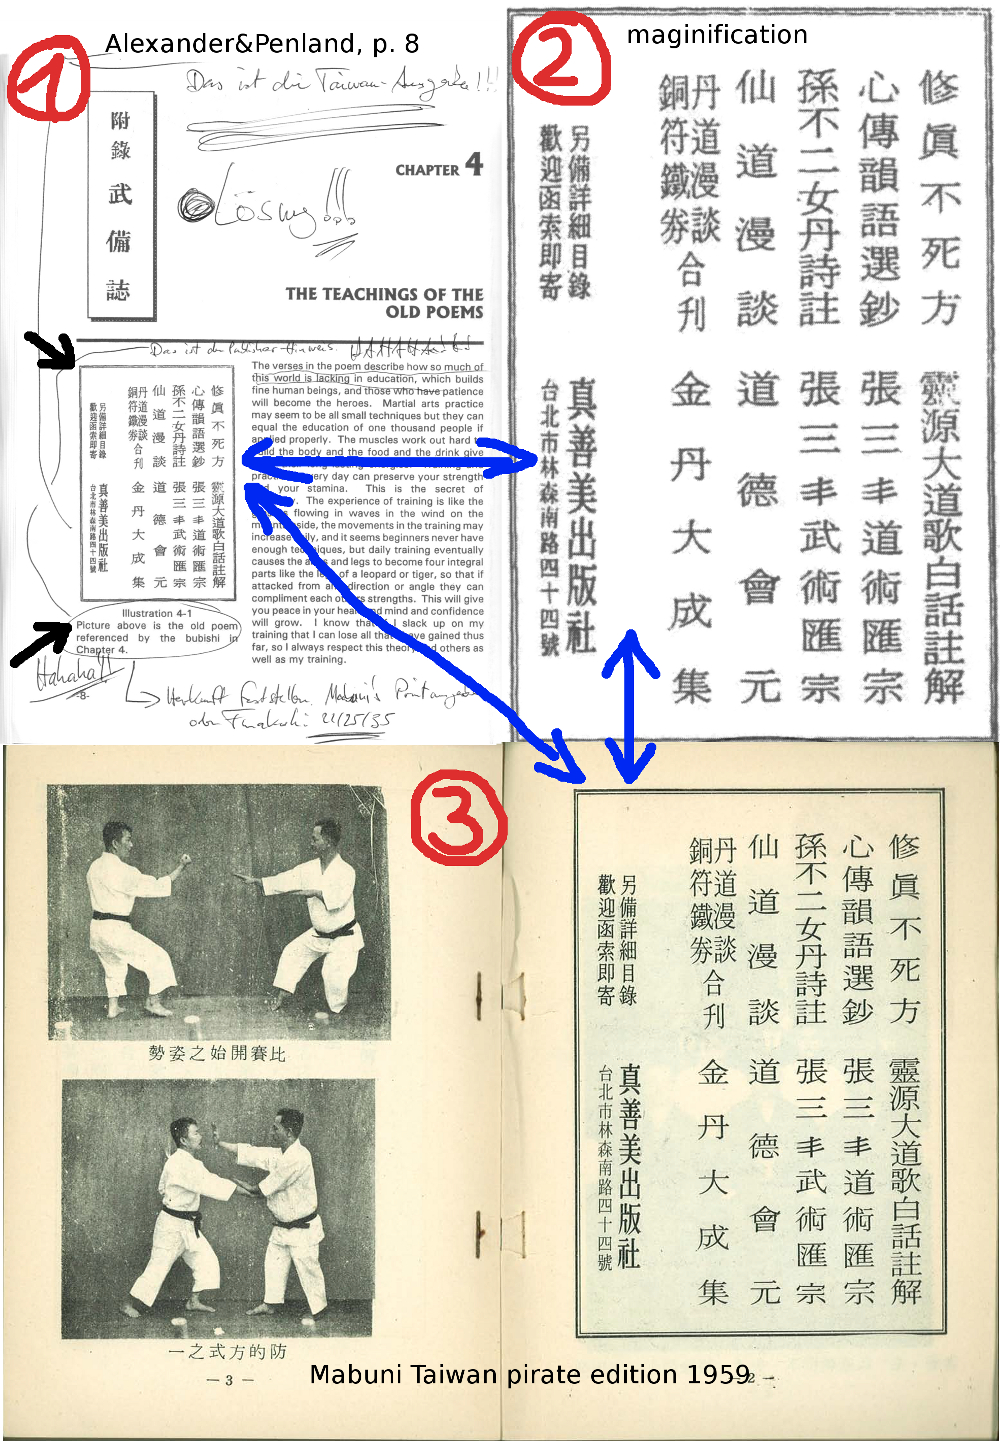 """Illustration """"old poem referenced by the bubishi"""", which in fact shows publication data found on page 2 of the 1959 Taiwan pirate edition of Mabuni Kenwa's 1934 work."""